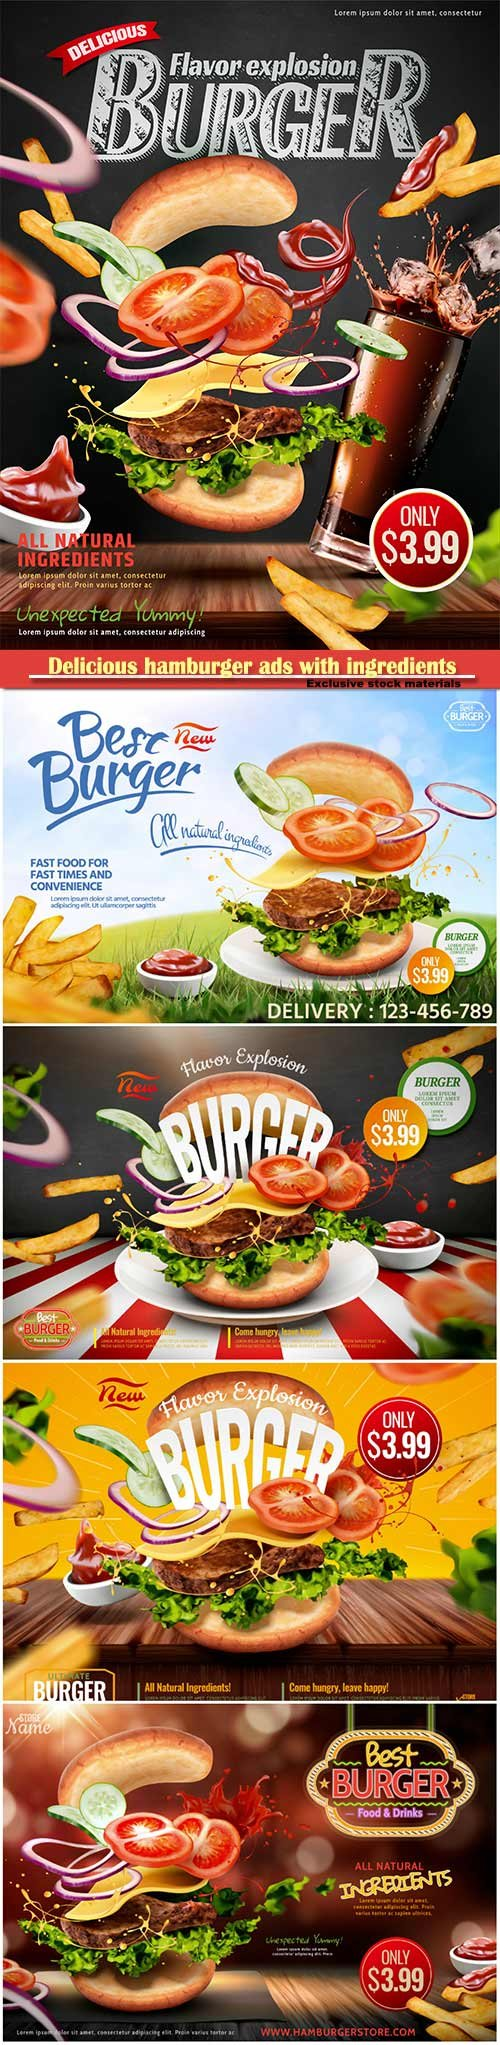 Delicious hamburger ads with ingredients flying in the air on chalkboard background in 3d illustration